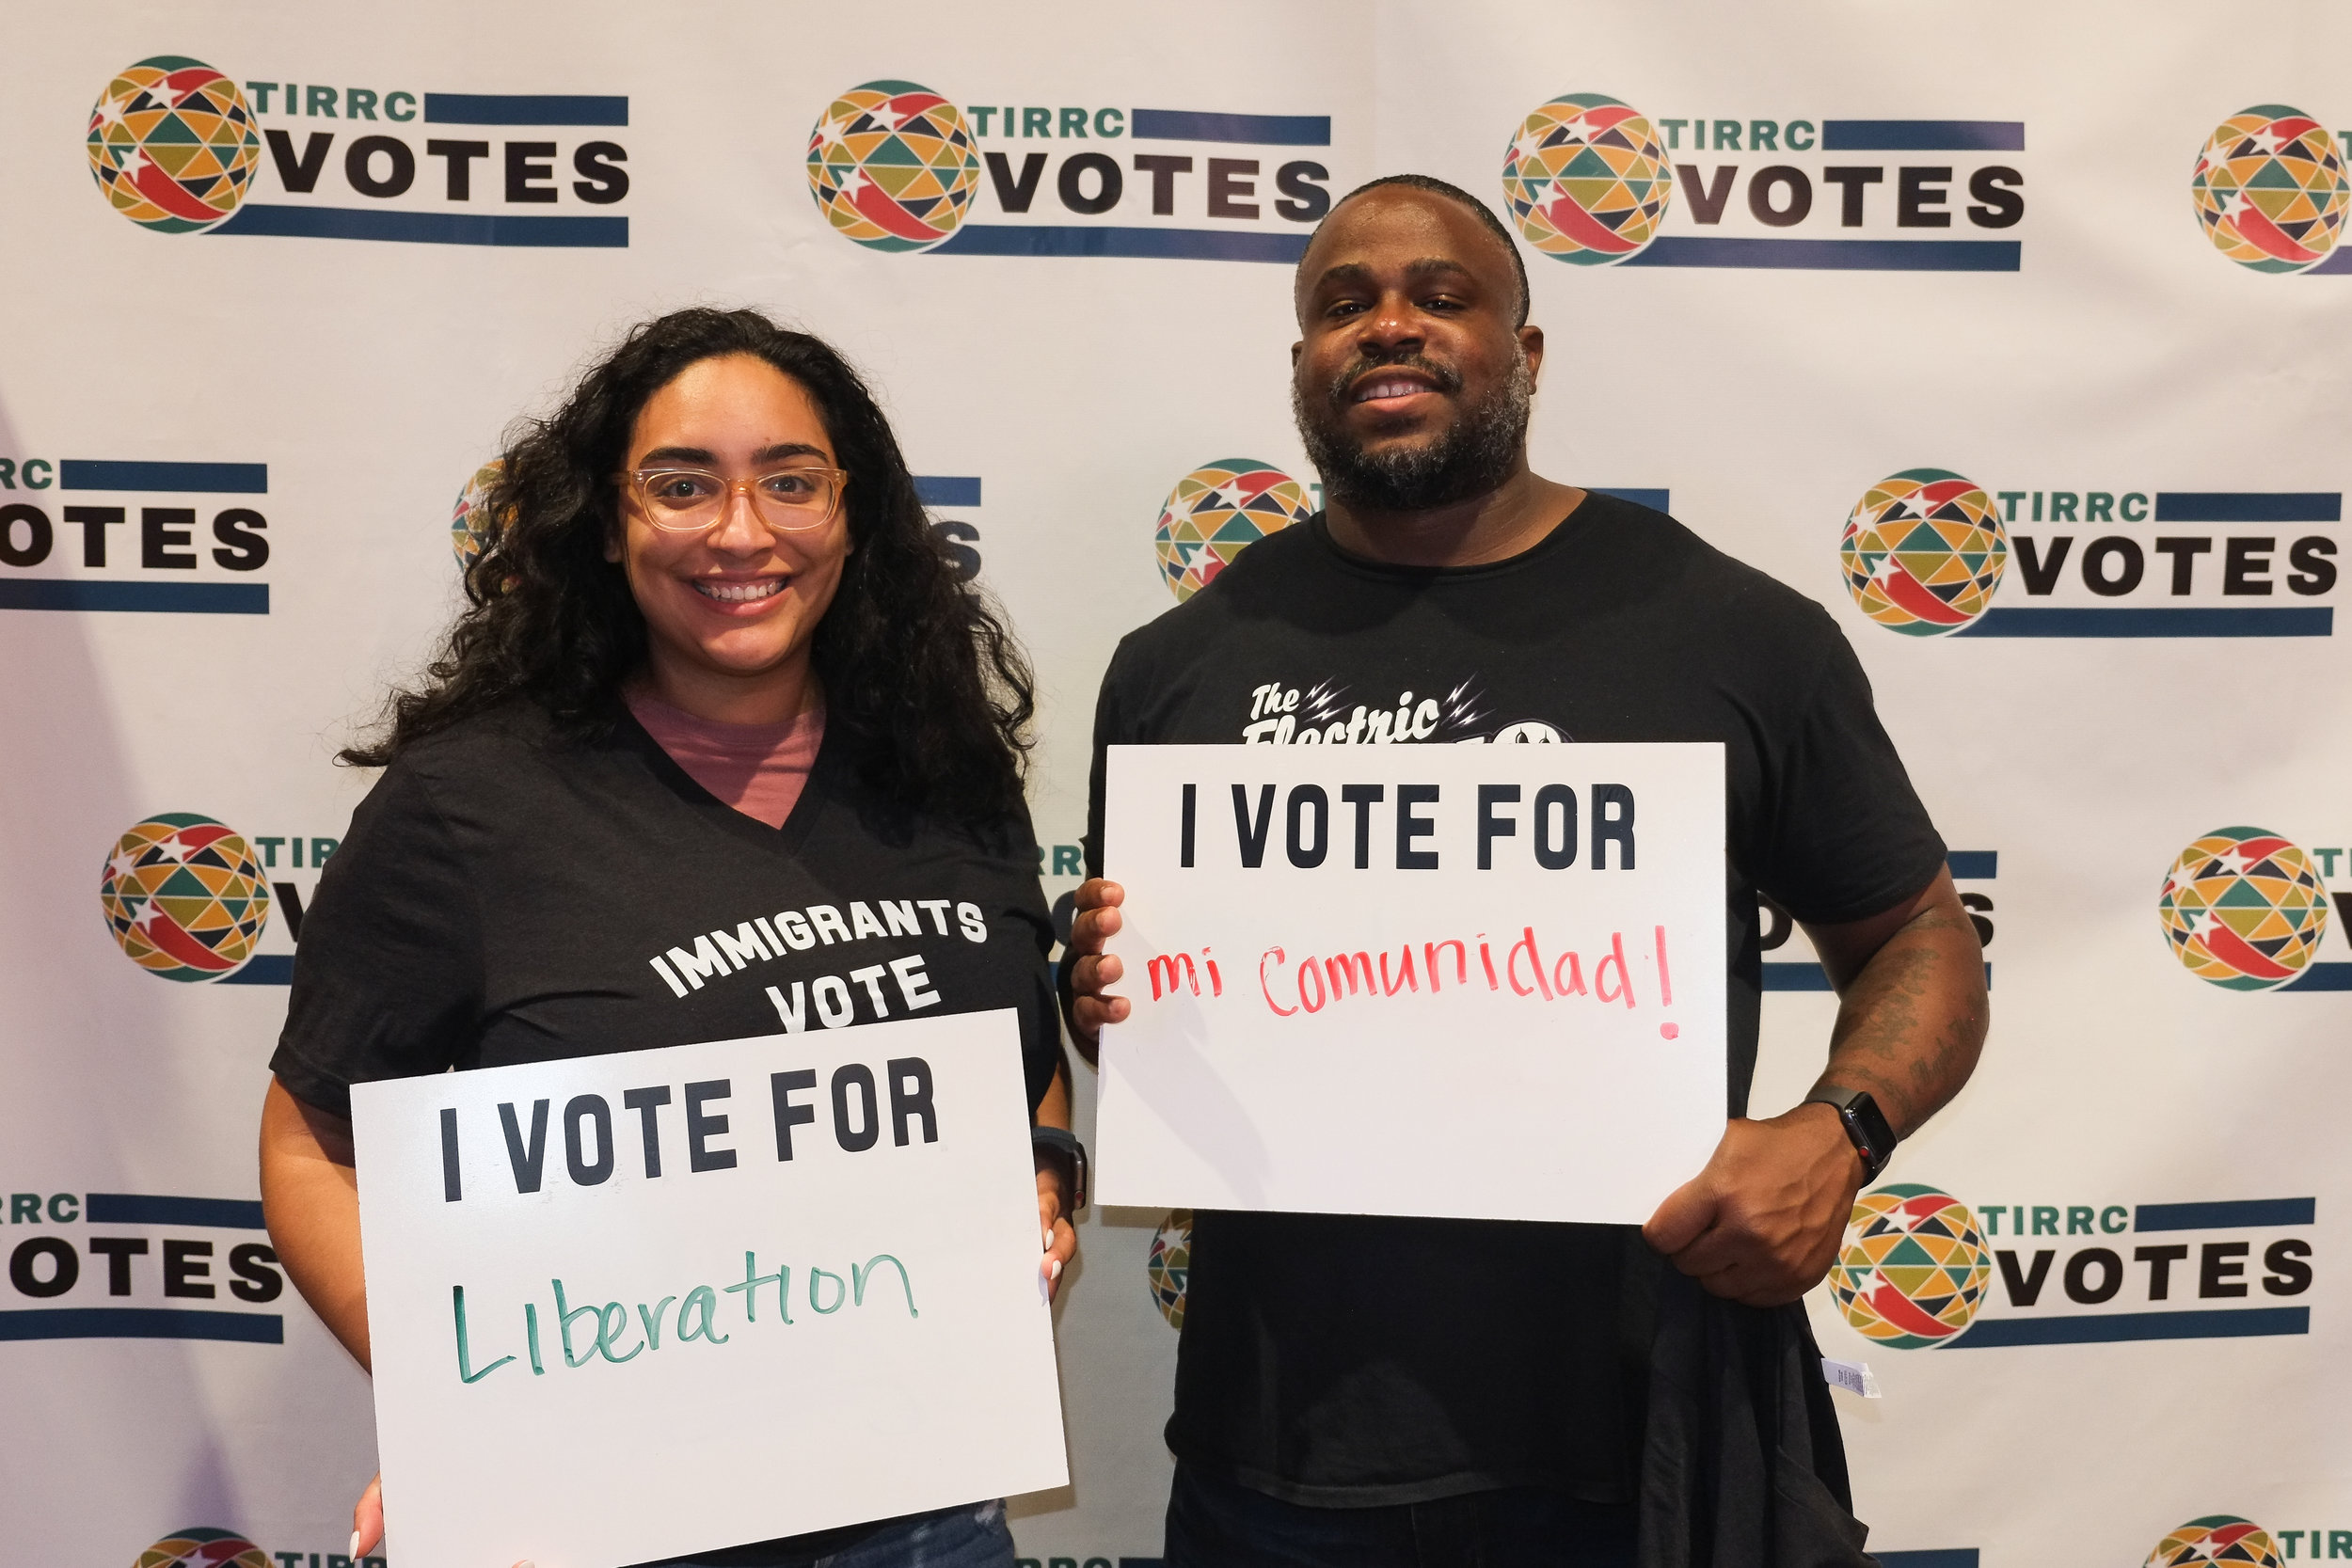 TIRRCVotes-PhotoBooth-30.jpg